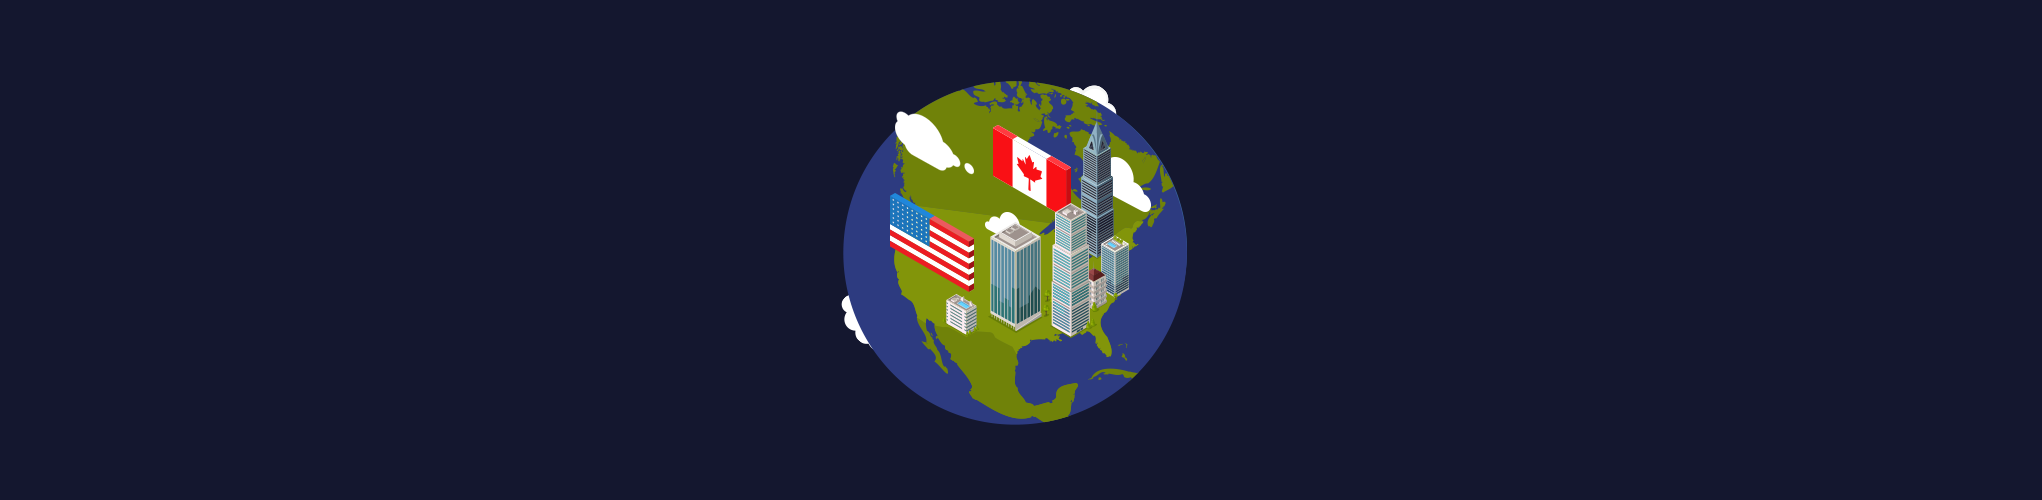 New Markets Added to Alliance Virtual Offices Across the US and Canada